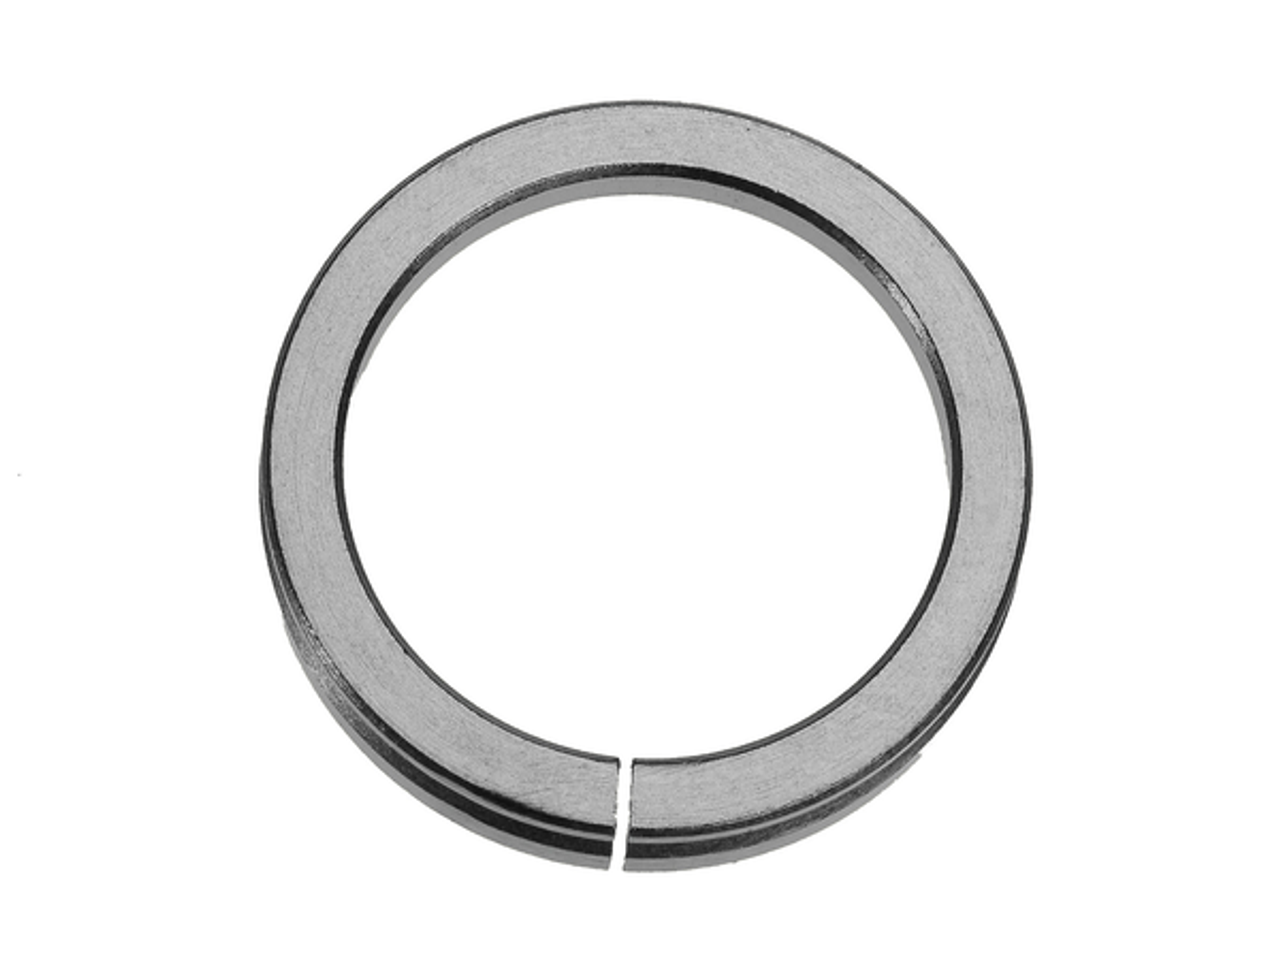 Piston Seal, Remington 20ga LW 1100 & 11-87